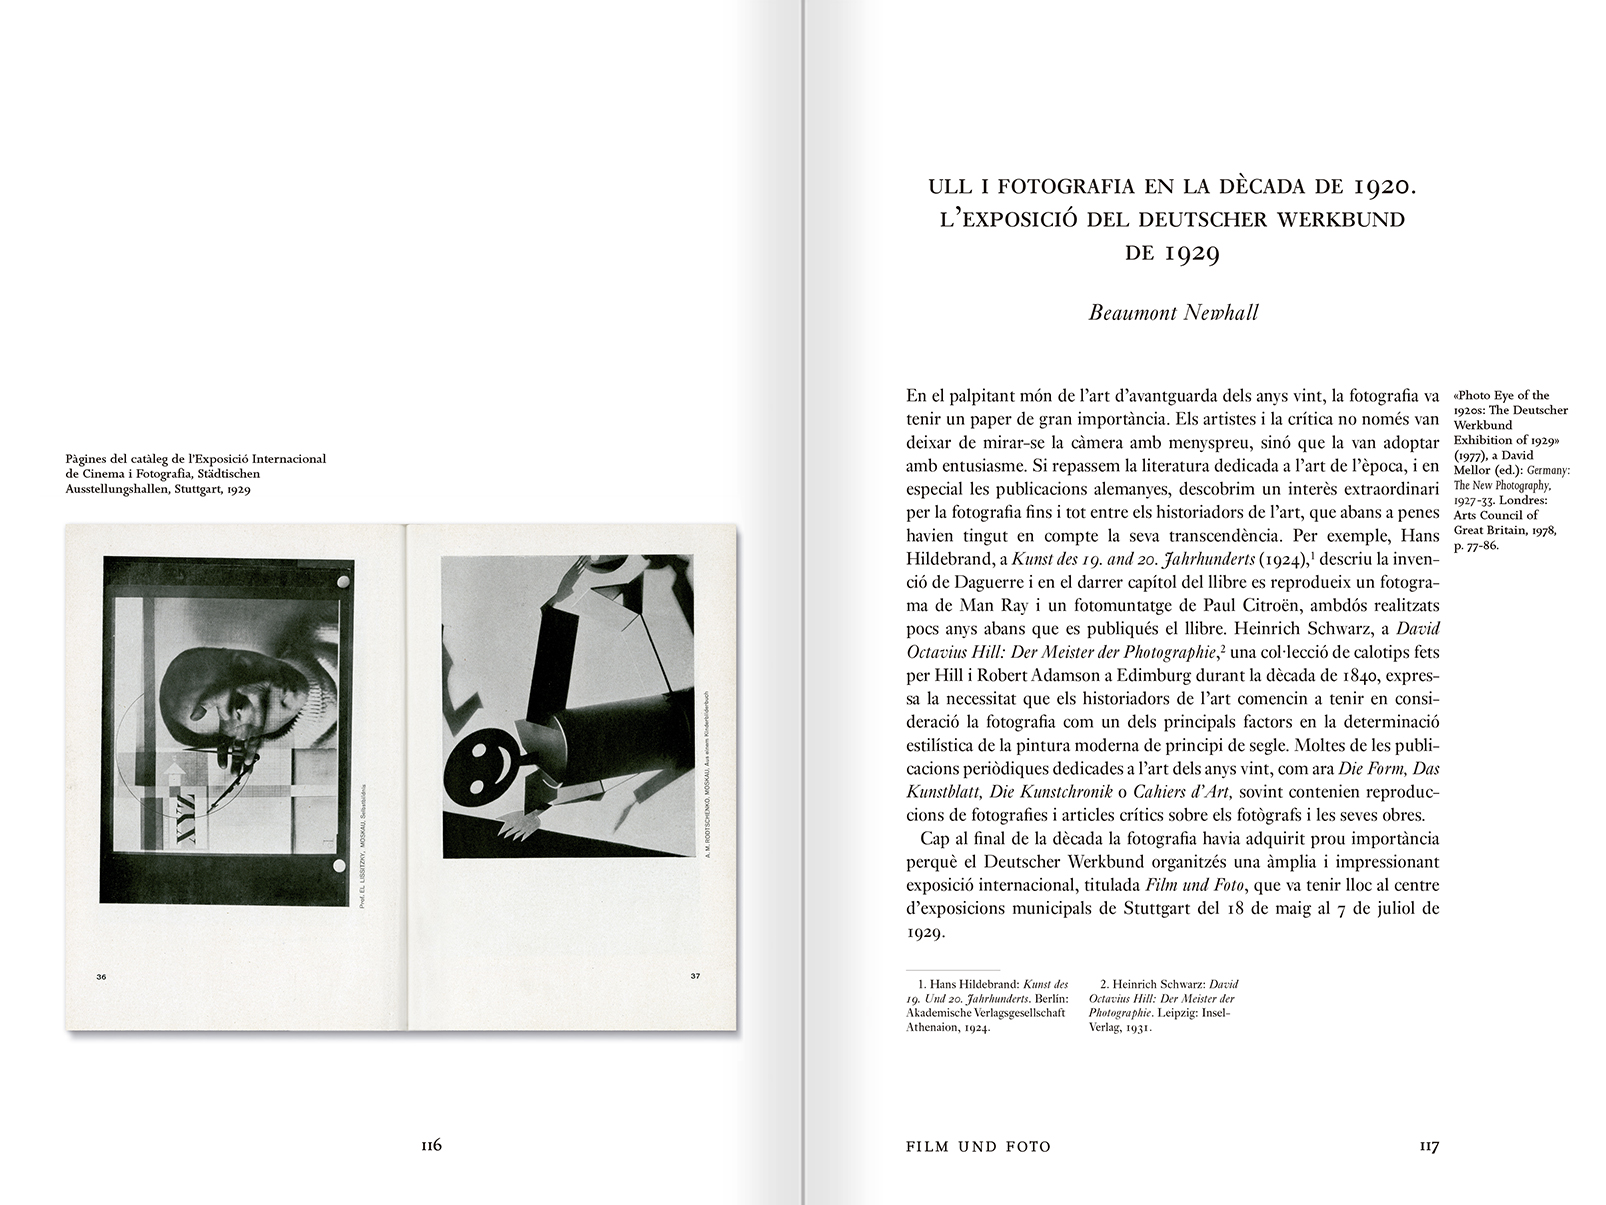 Selection from the catalogue 'Public Photographic Spaces. Propaganda Exhibitions from Pressa to The Family of Man, 1928-55', pages 114 and 115